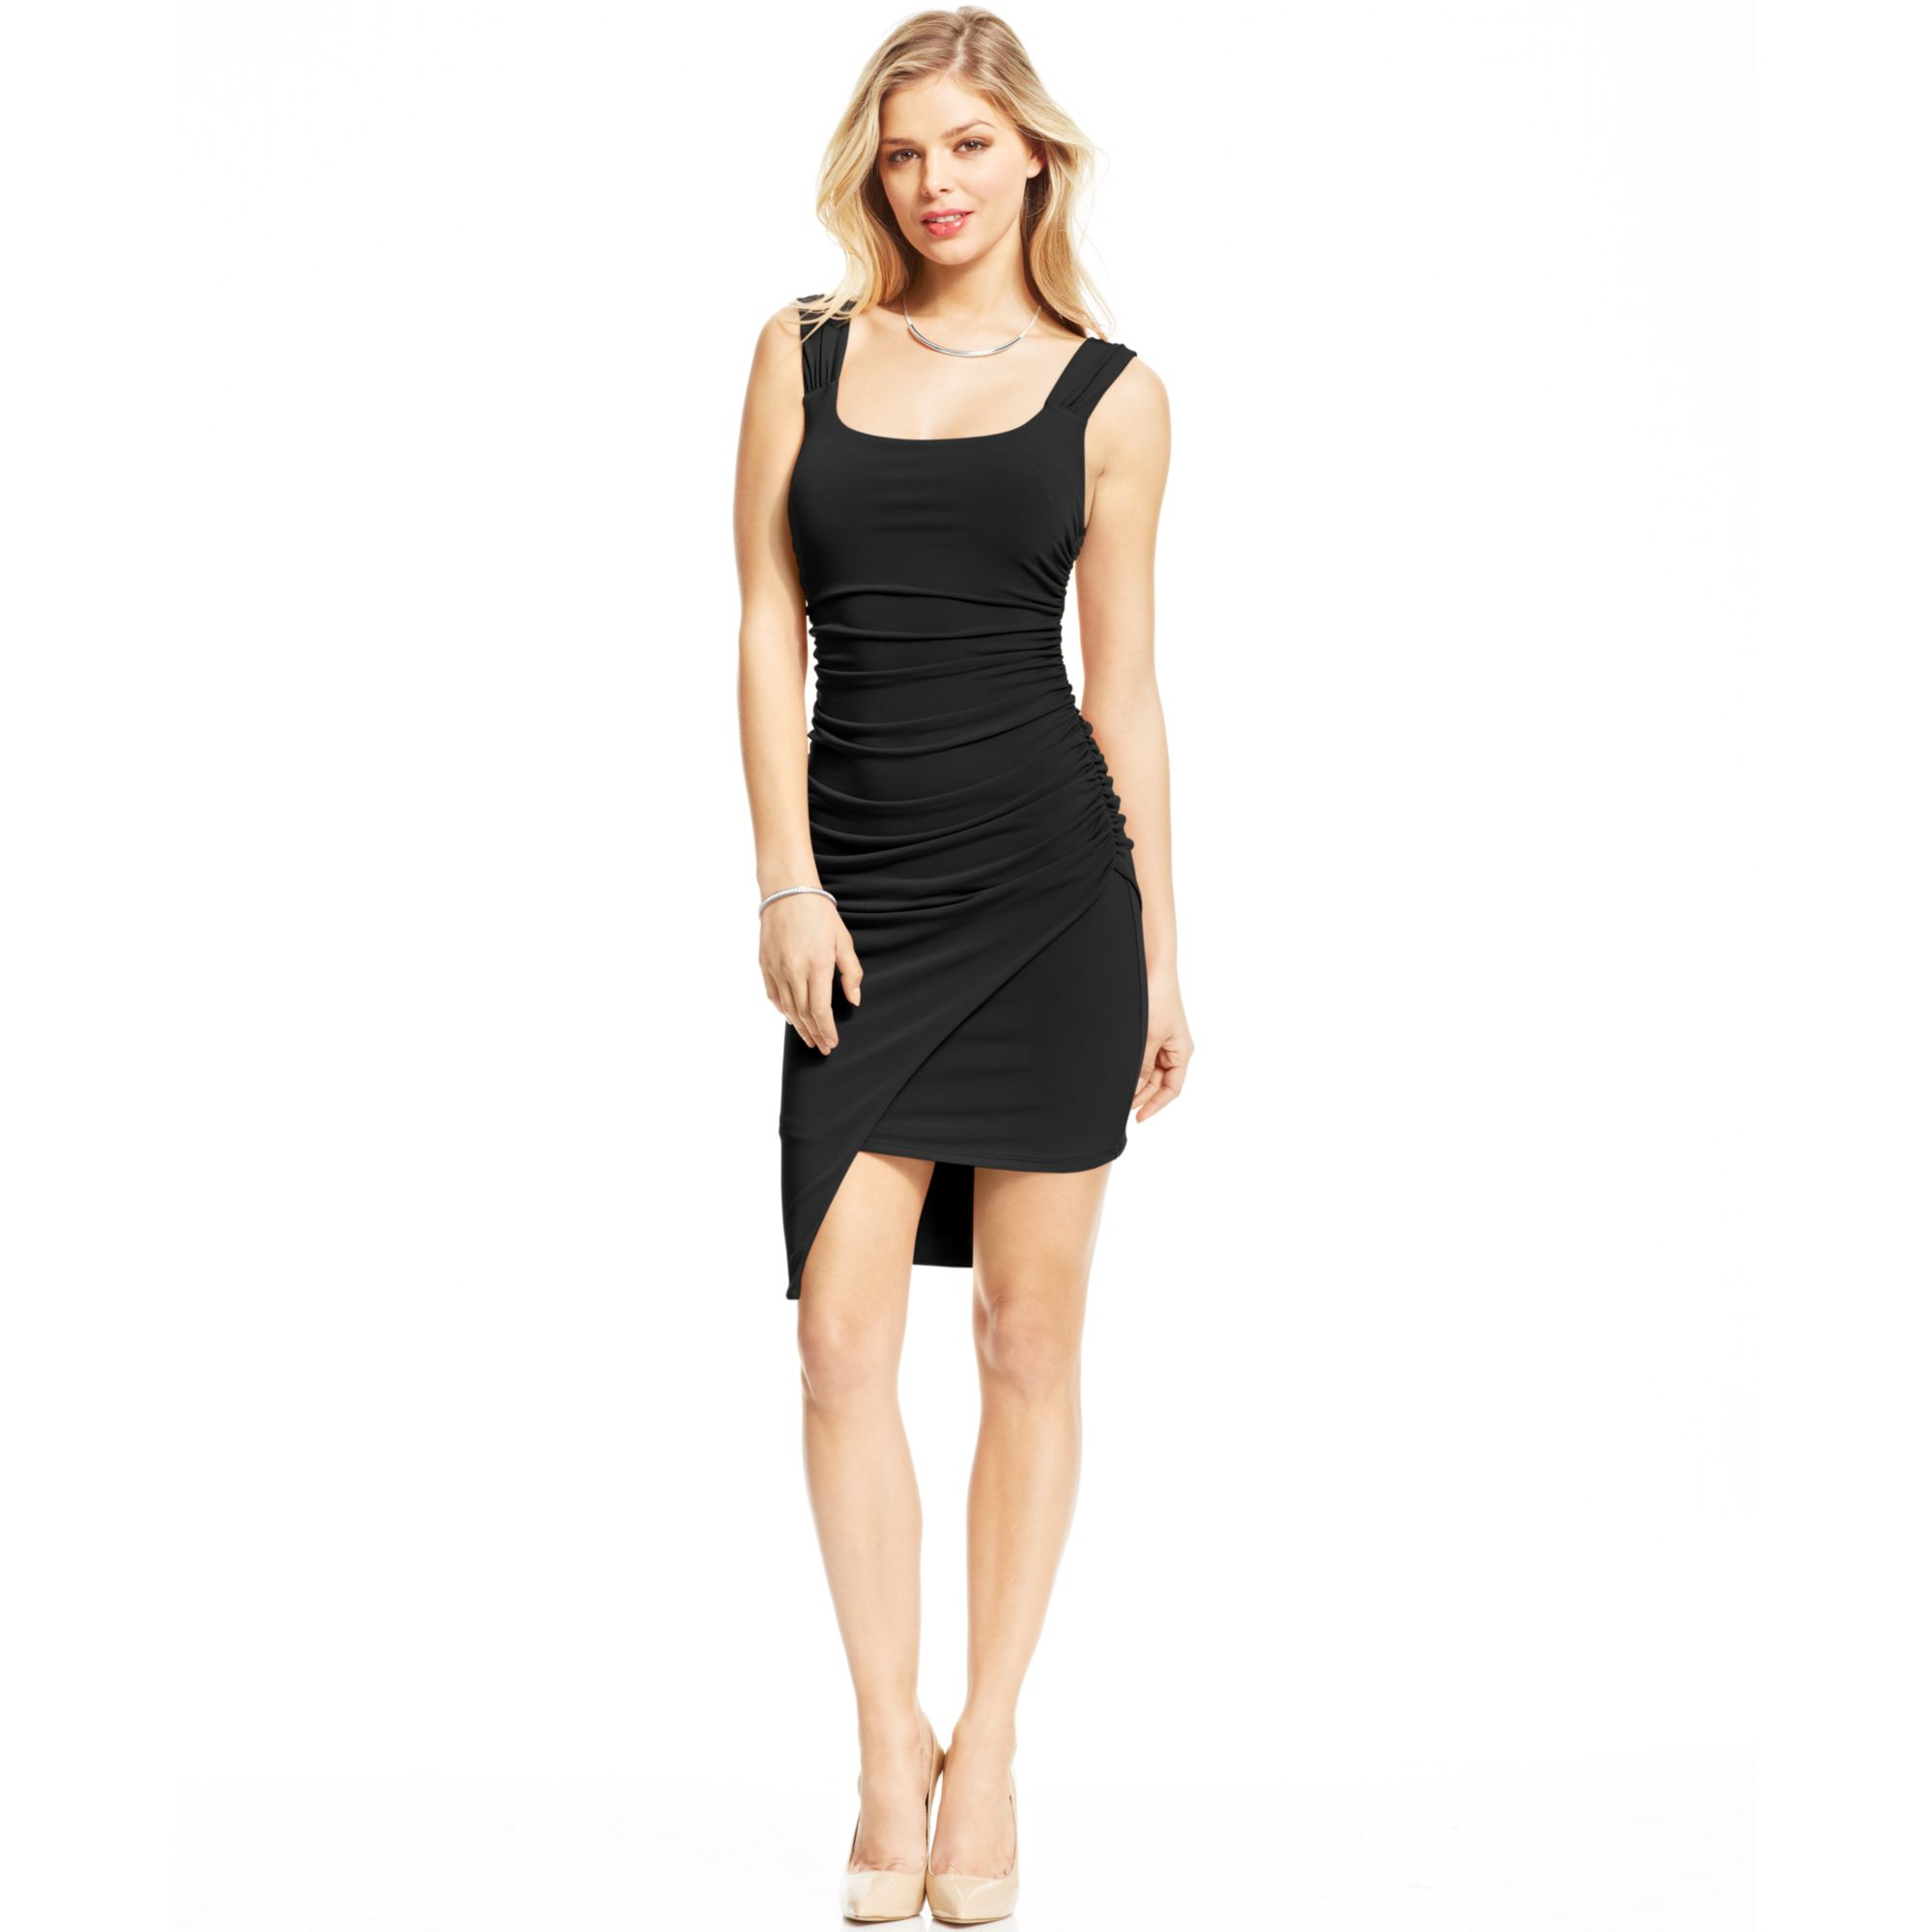 macys black dresses photo - 1